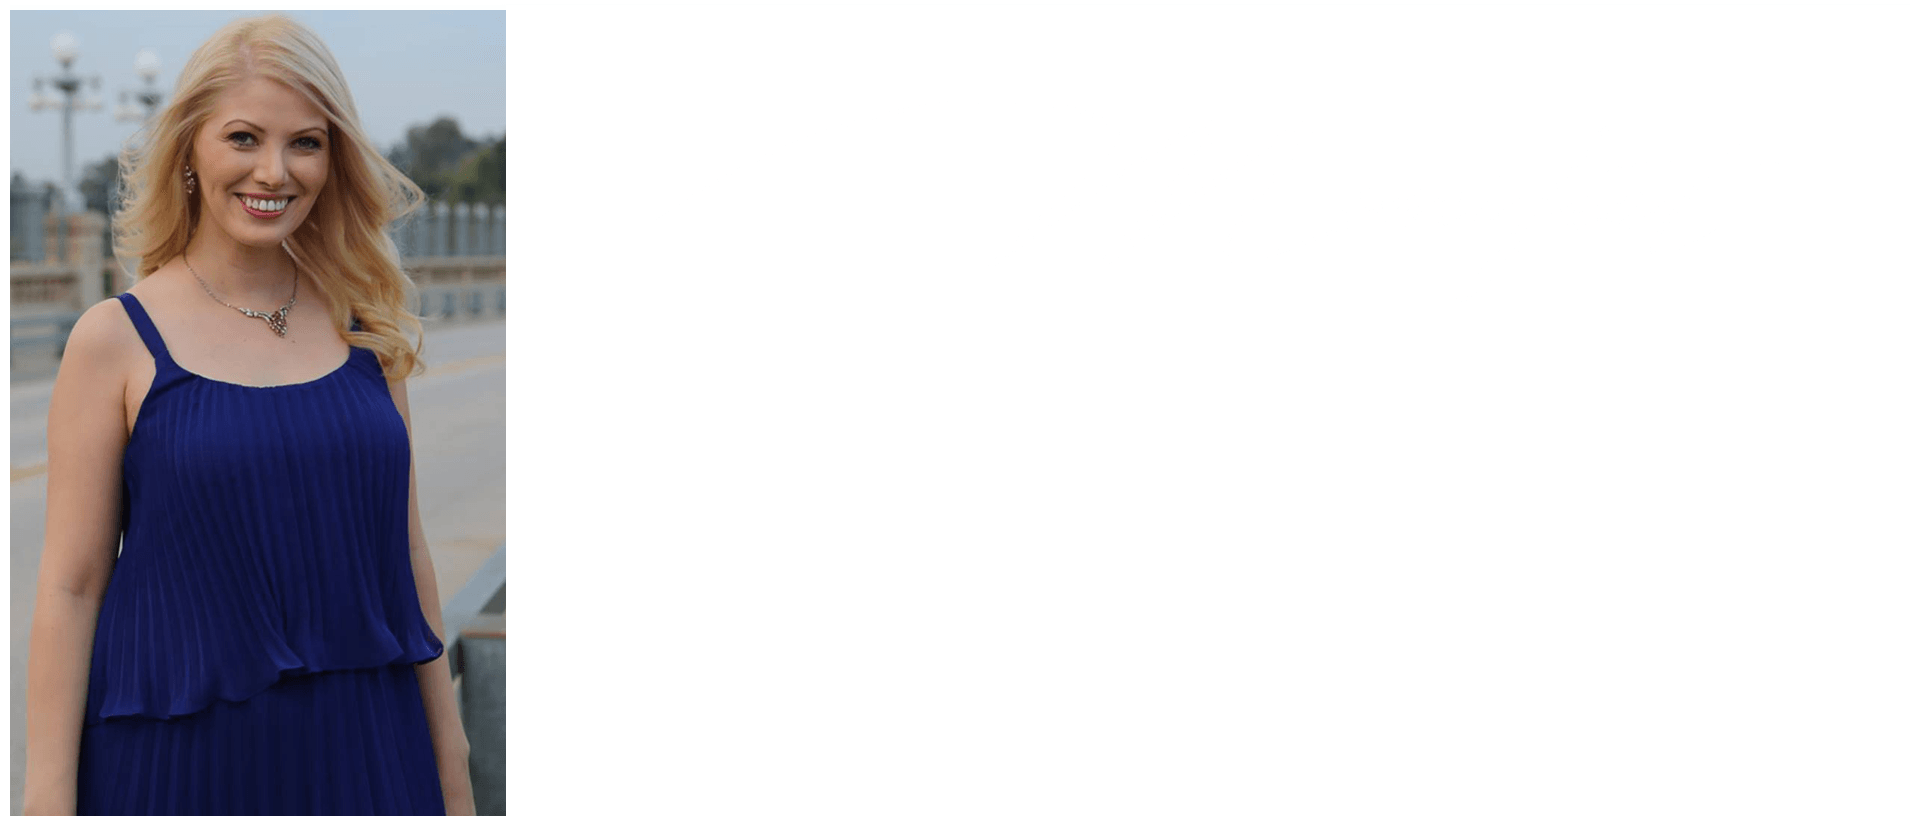 Manifest Your Dream Friends - How To Attract Influencers & Turn Them Into Friends So That You Are Connecting On The Heart Level, Make More Money & A Bigger Impact